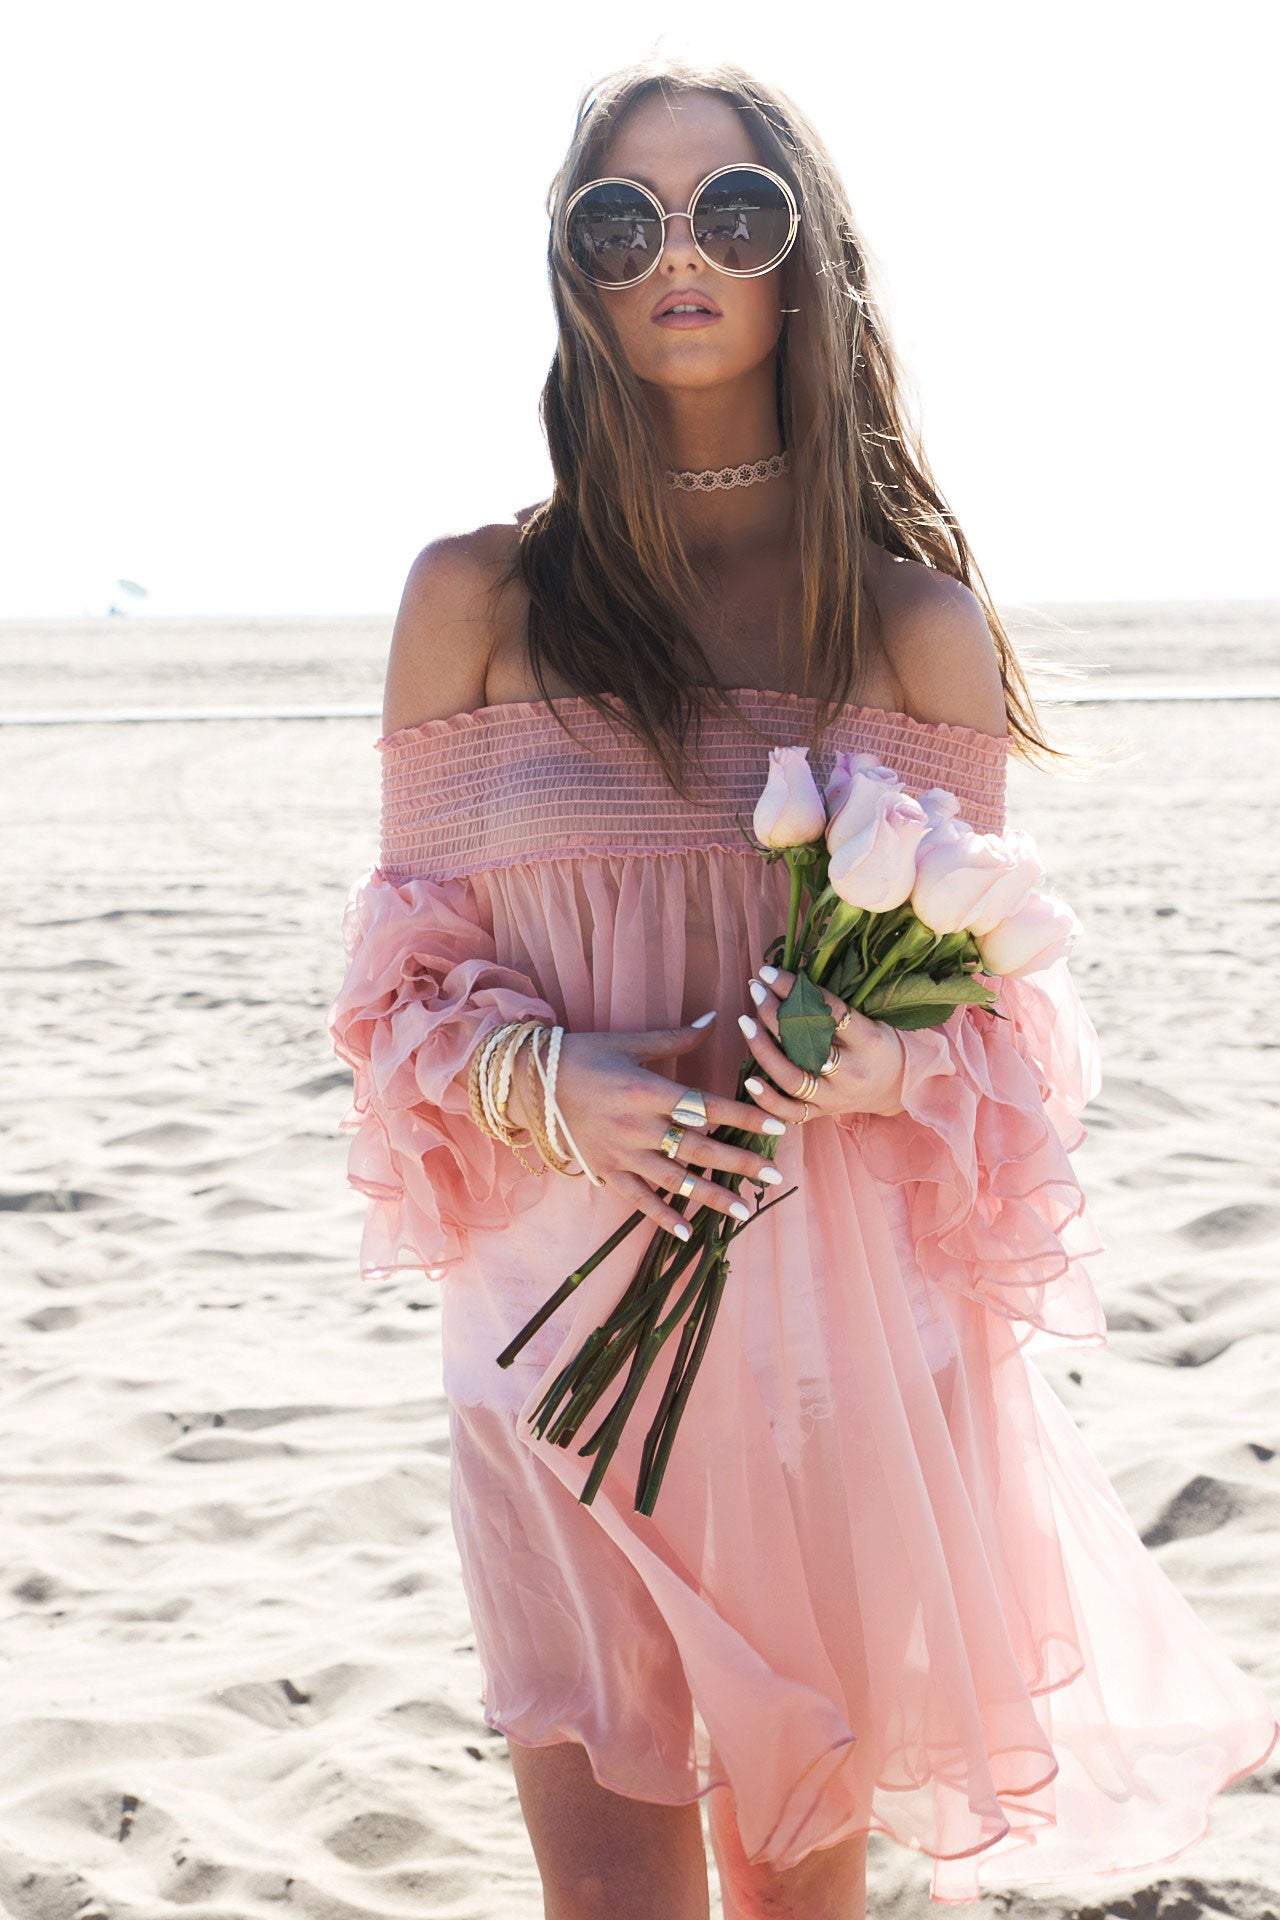 Off the shoulder sheer ruffle resort wear cover-up dress in pink. Front view